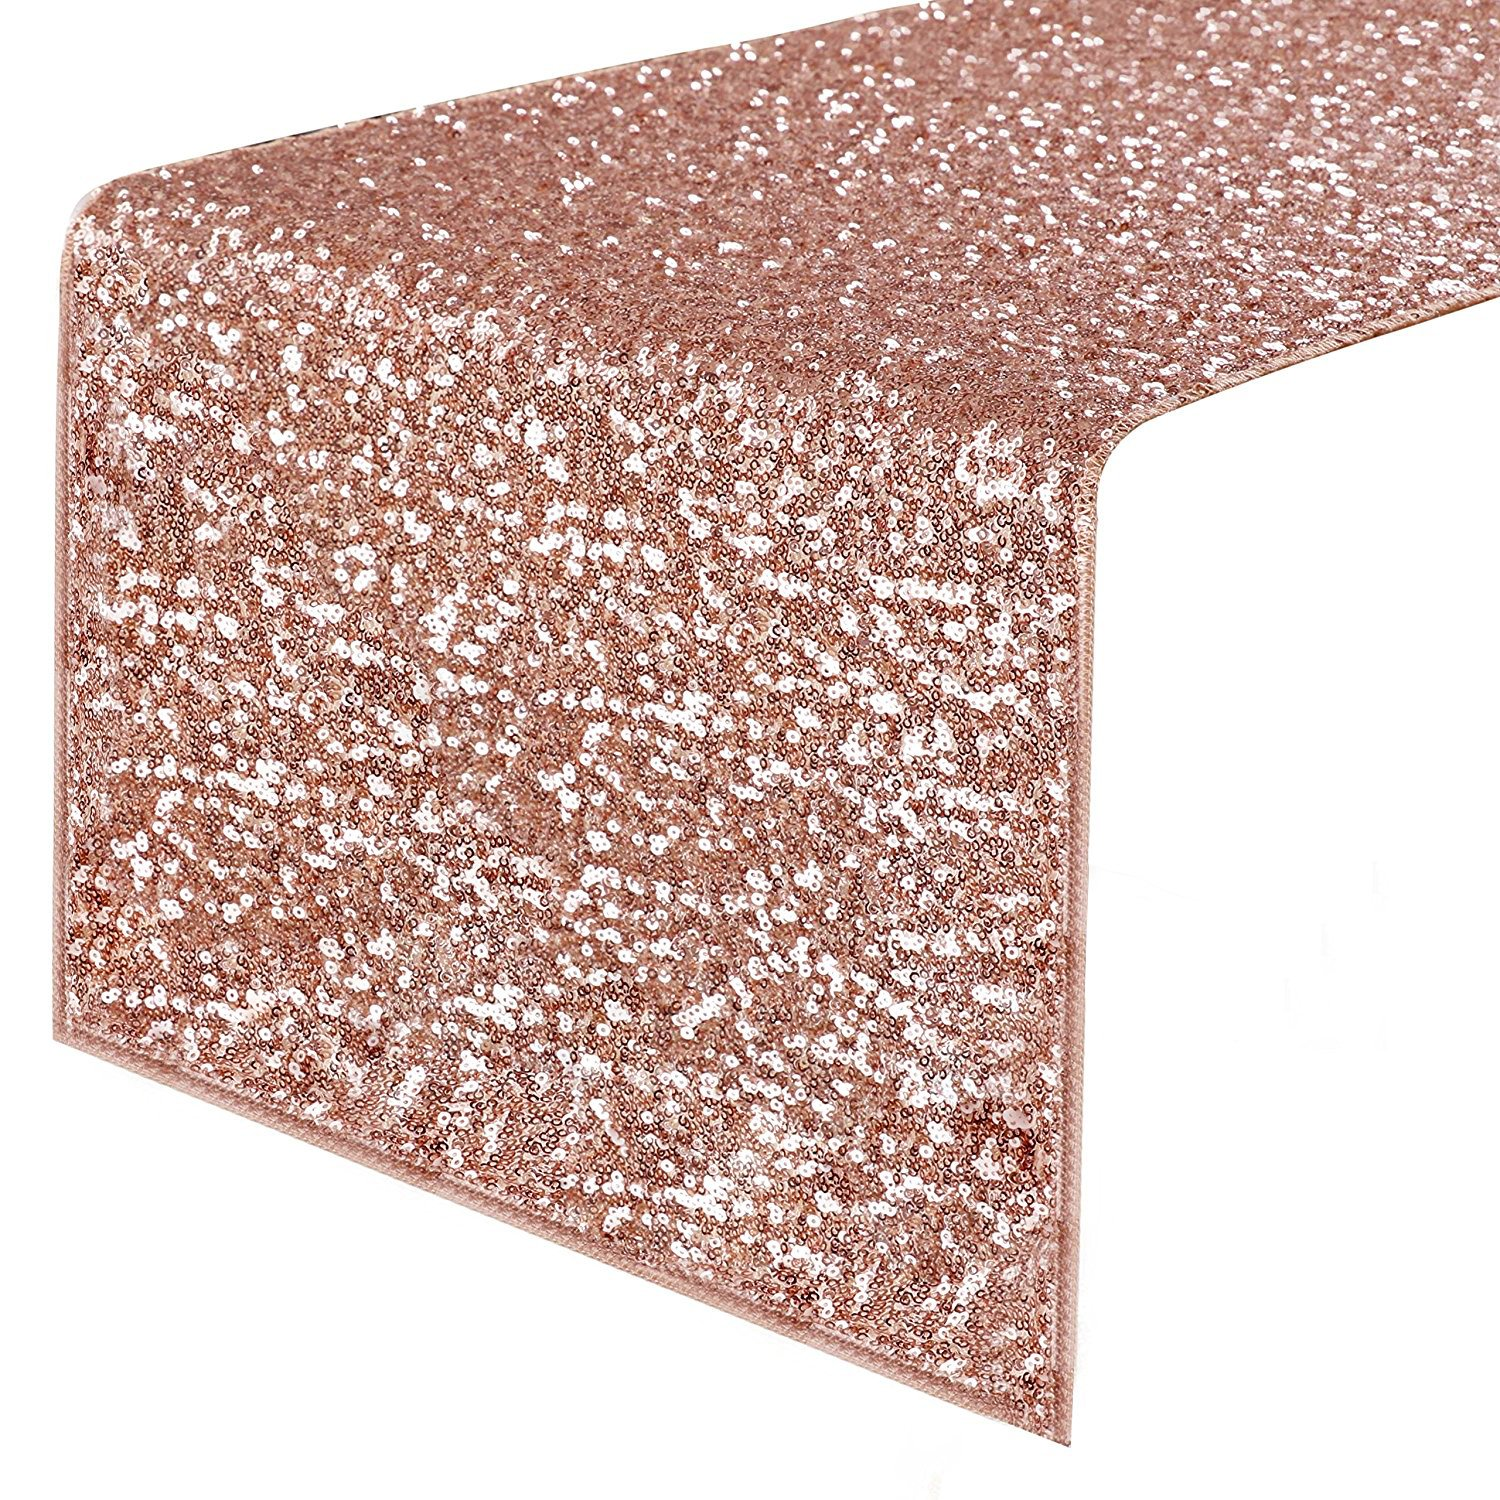 """PONY DANCE Sequins Table Runner - Decorative Sparkling Table Runner with Premium Quality for Christmas/Party/Wedding/Birthday Banquet Decoration, 14"""" x 108"""", Champagne Blush"""